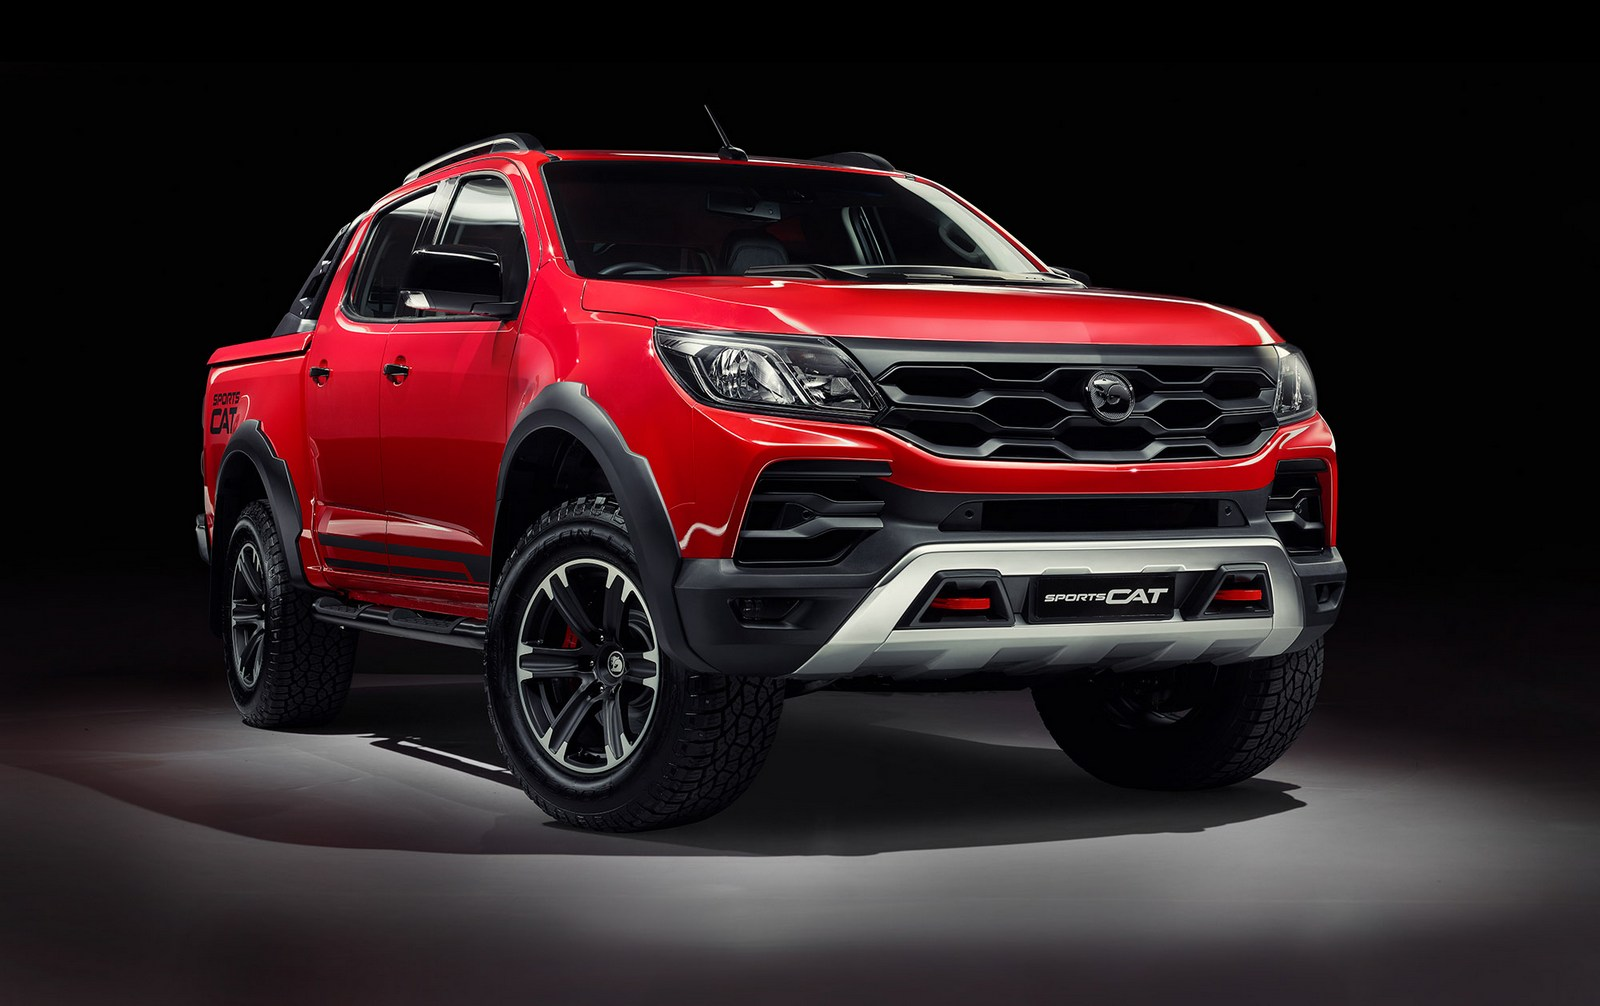 2018 Holden Colorado SportsCat By HSV Is All About Off ...